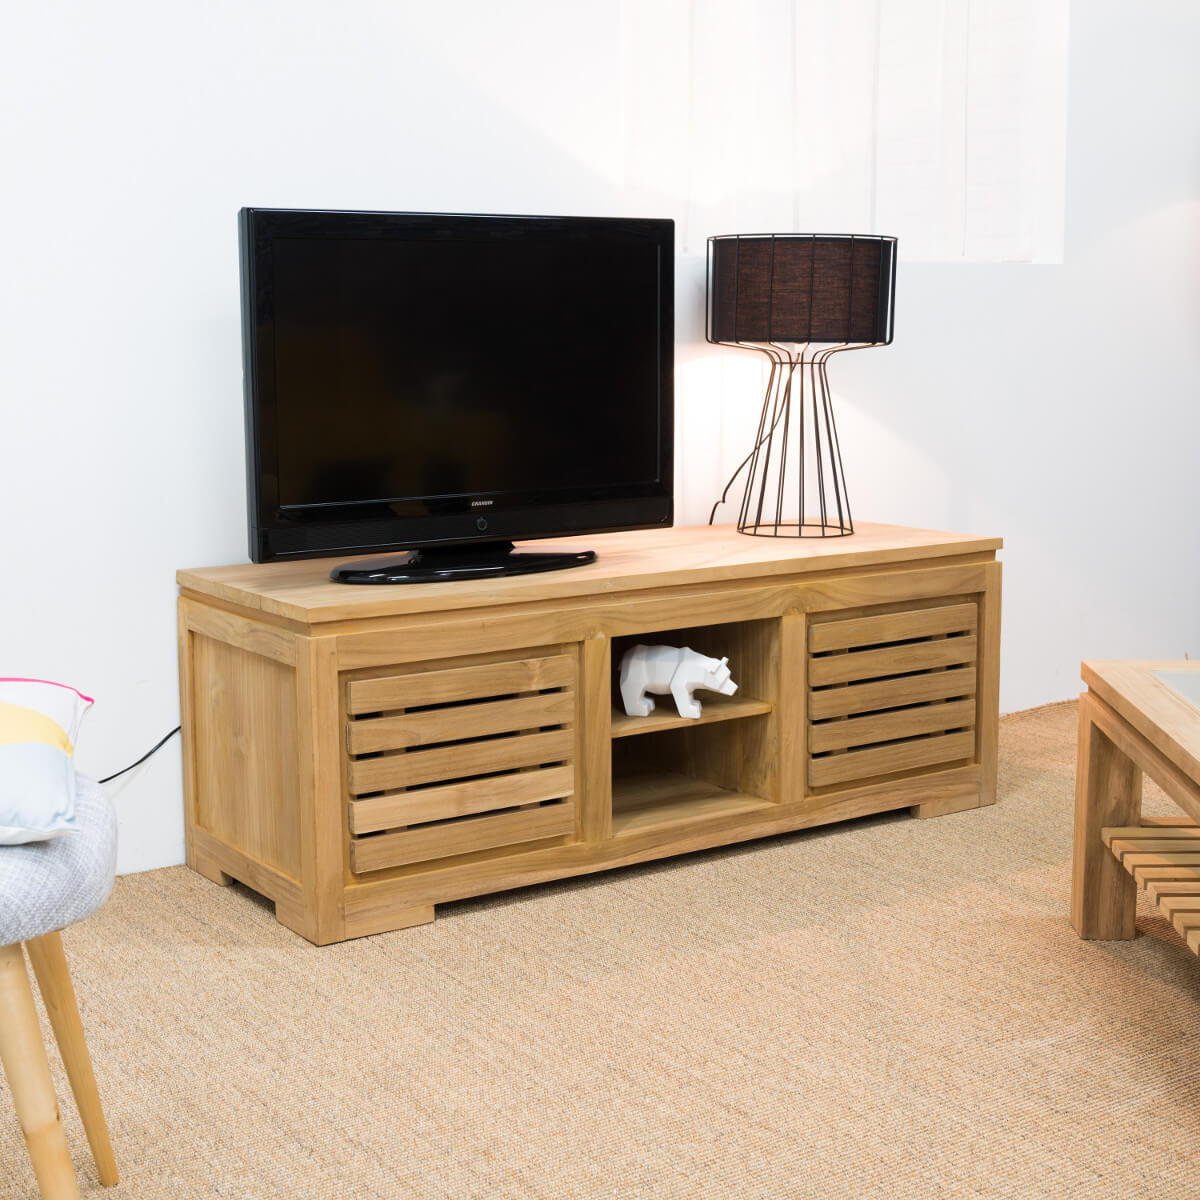 Meuble Tv Teck Meuble Tv Bois Naturel Rectangle Zen 140 Cm # Meuble Tv En Promo